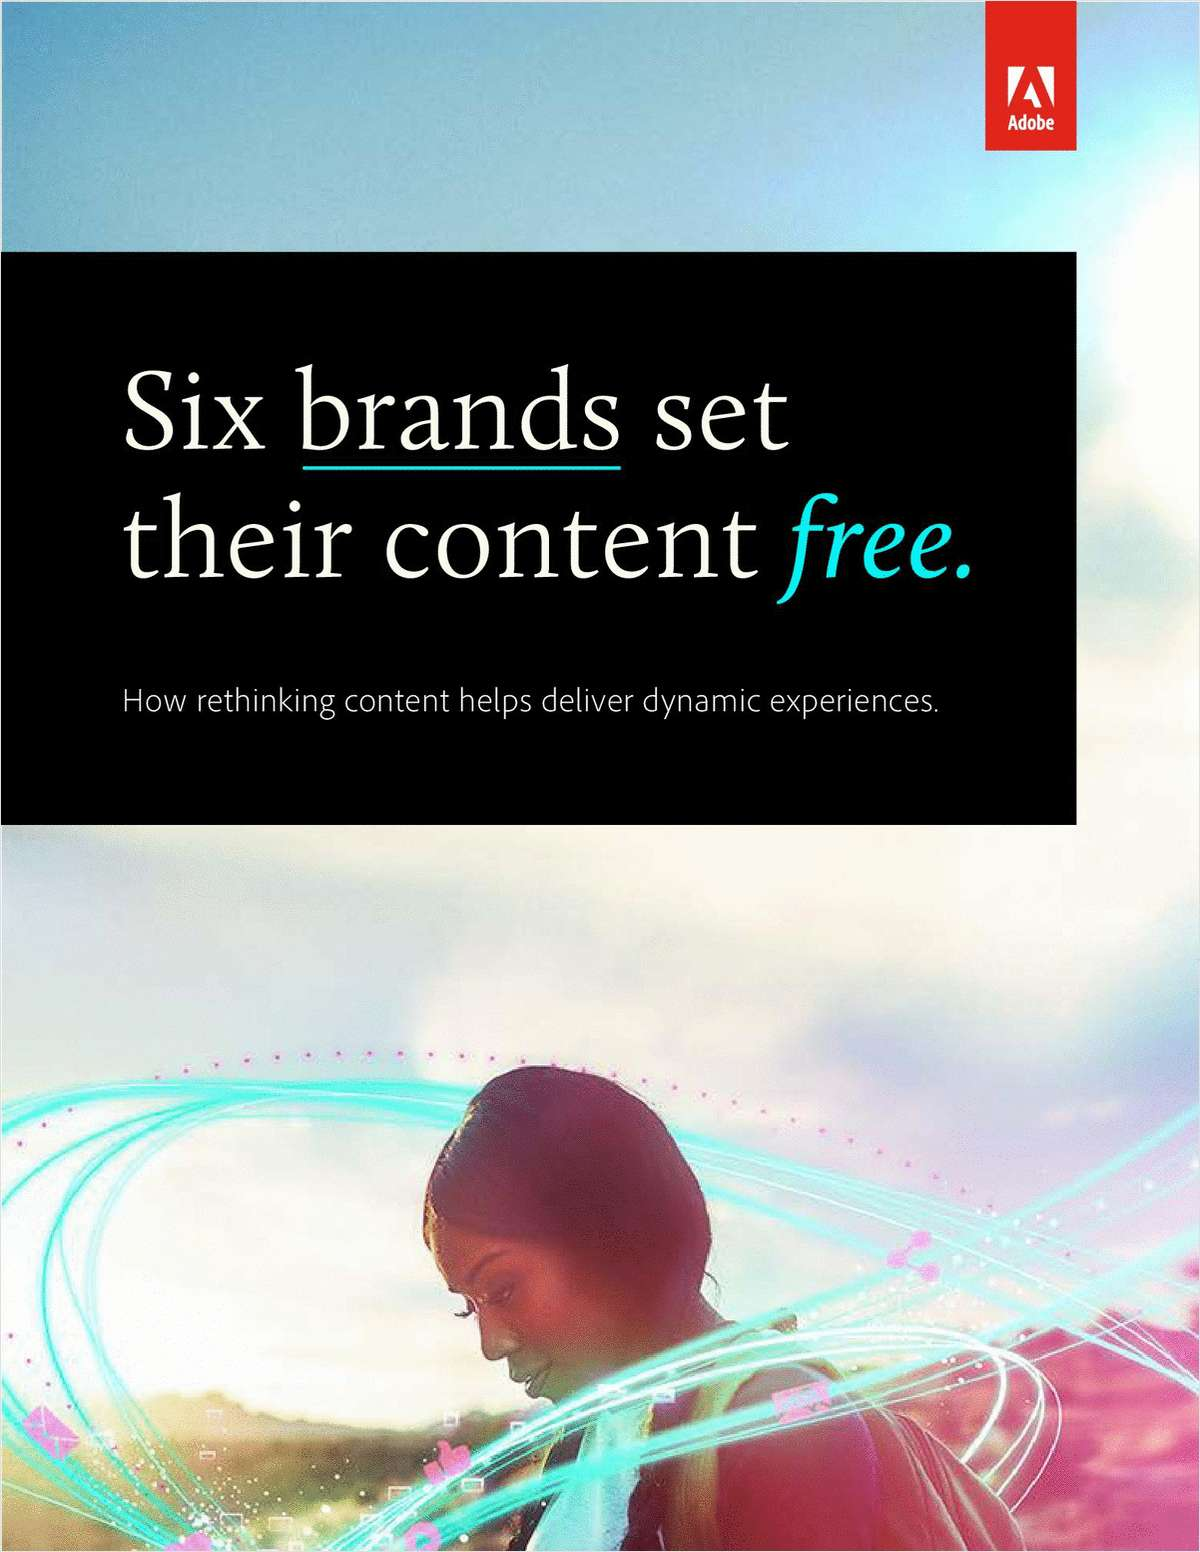 6 Brands Set Their Content Free